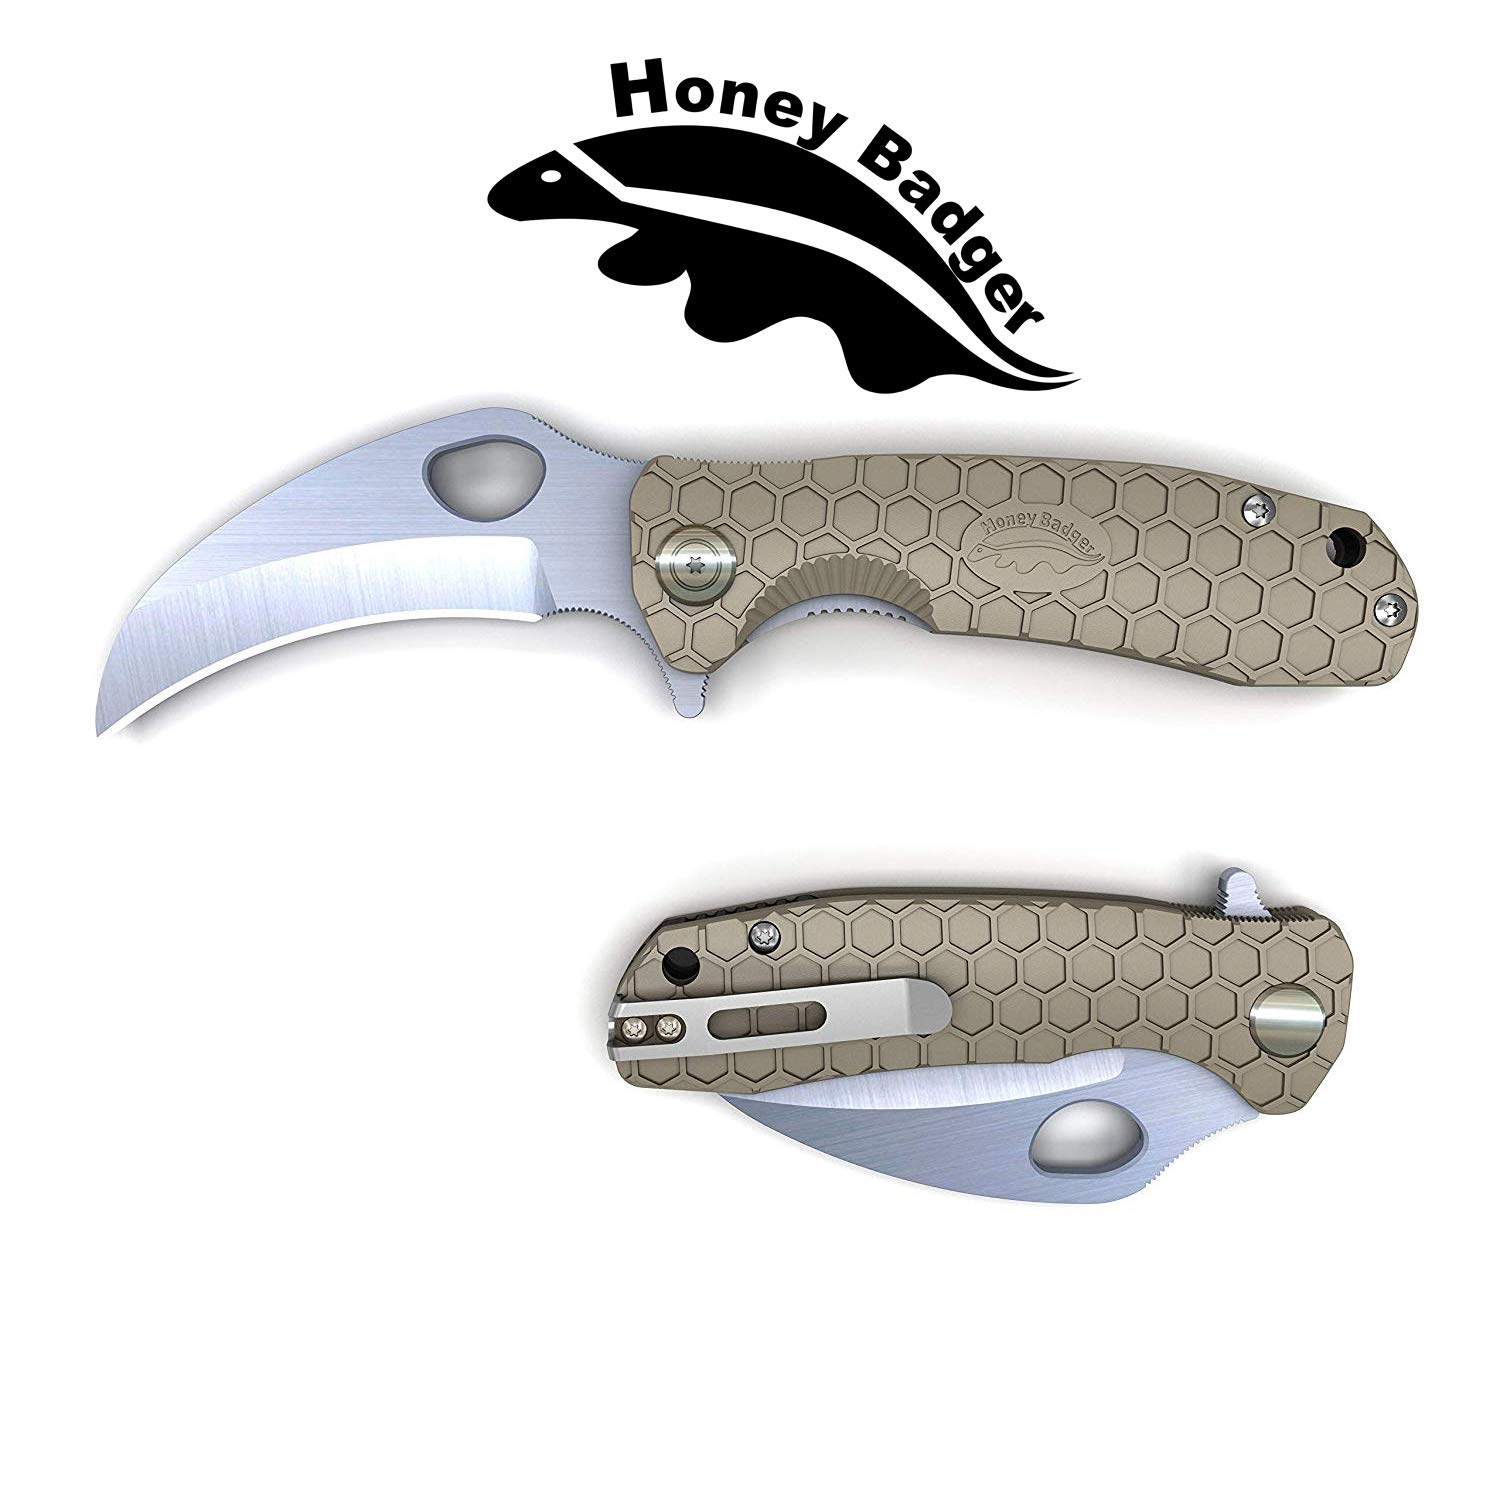 Western Active Honey Badger Pocket Knife Flipper Claw Model Smooth Blade (Claw Smooth Medium Tan) by Western Active